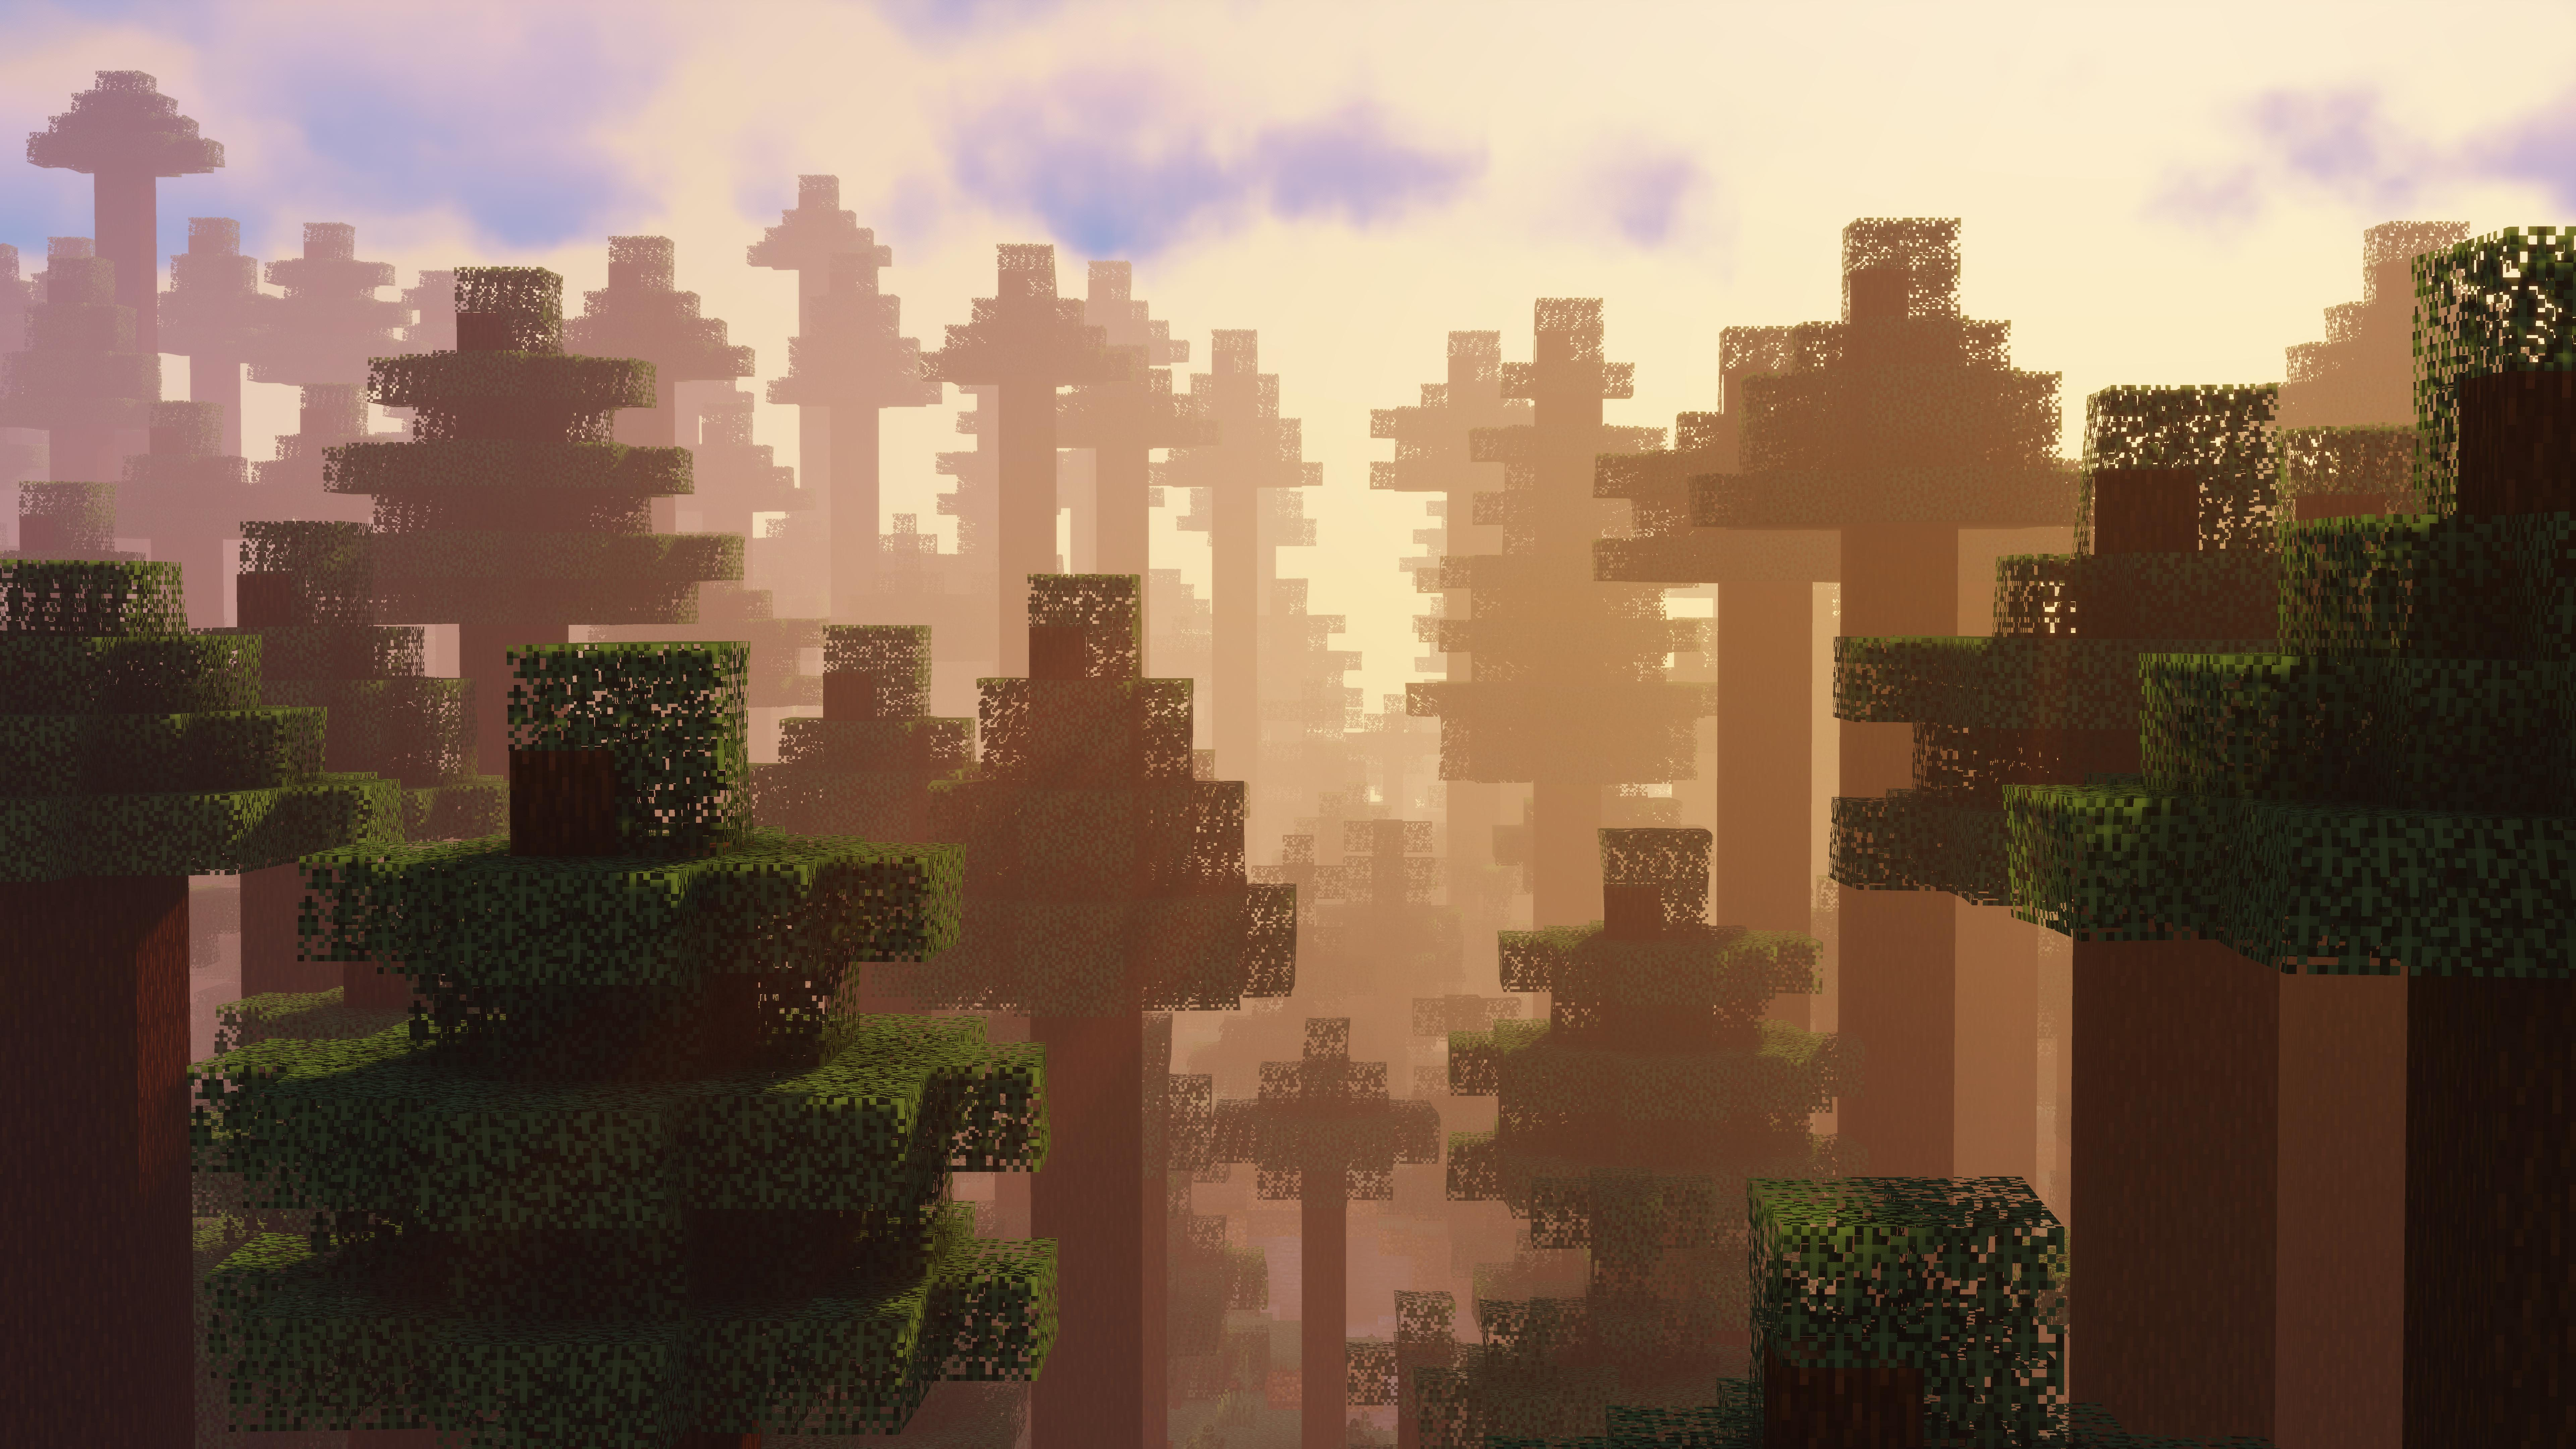 Minecraft 4k Wallpapers For Your Desktop Or Mobile Screen Free And Easy To Download